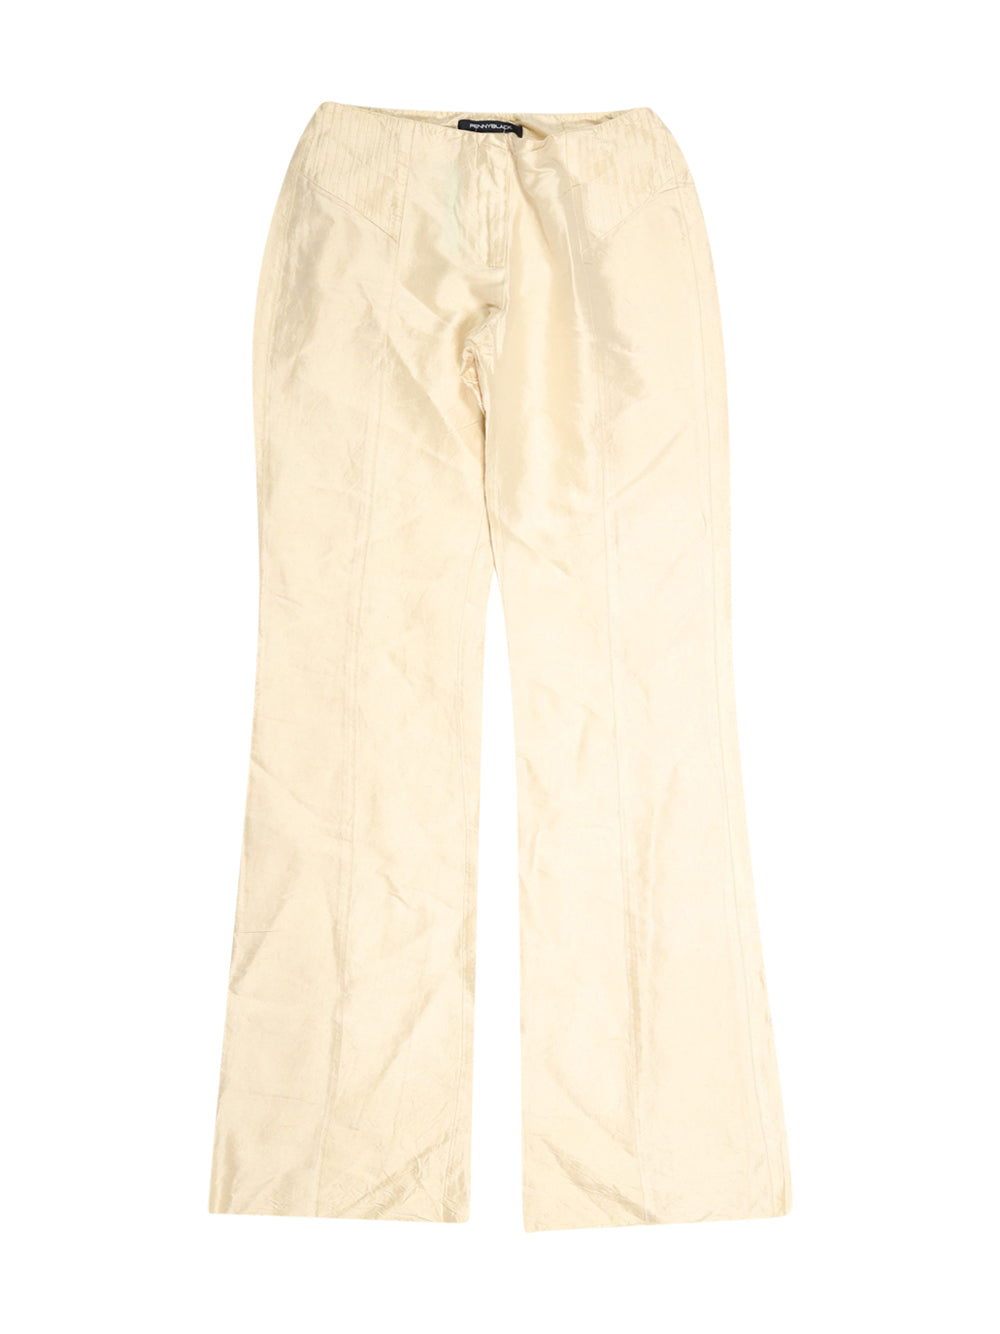 Front photo of Preloved Pennyblack Gold Woman's trousers - size 6/XS